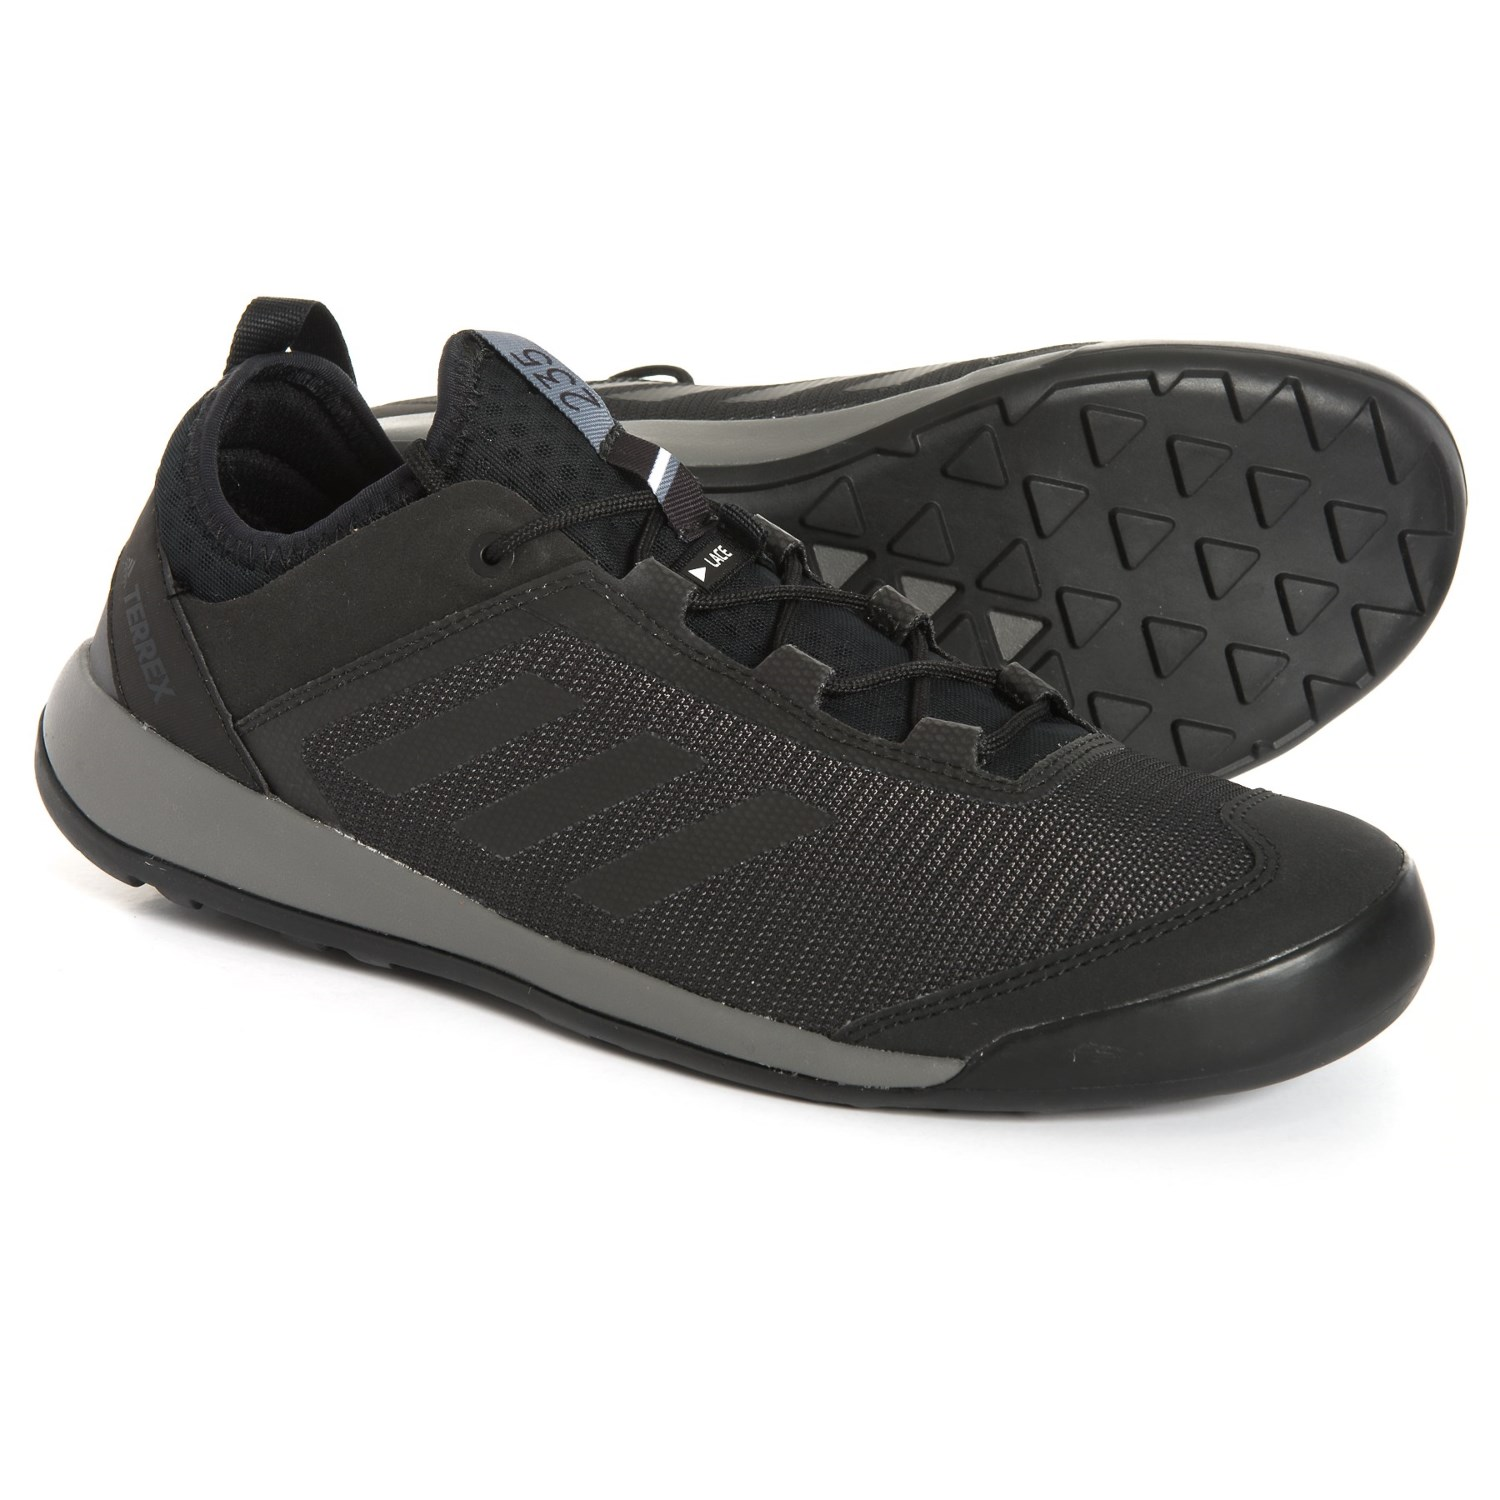 finest selection 2a4be dfdb6 adidas Terrex Swift Solo Hiking Shoes (For Men) in Utility Black Black